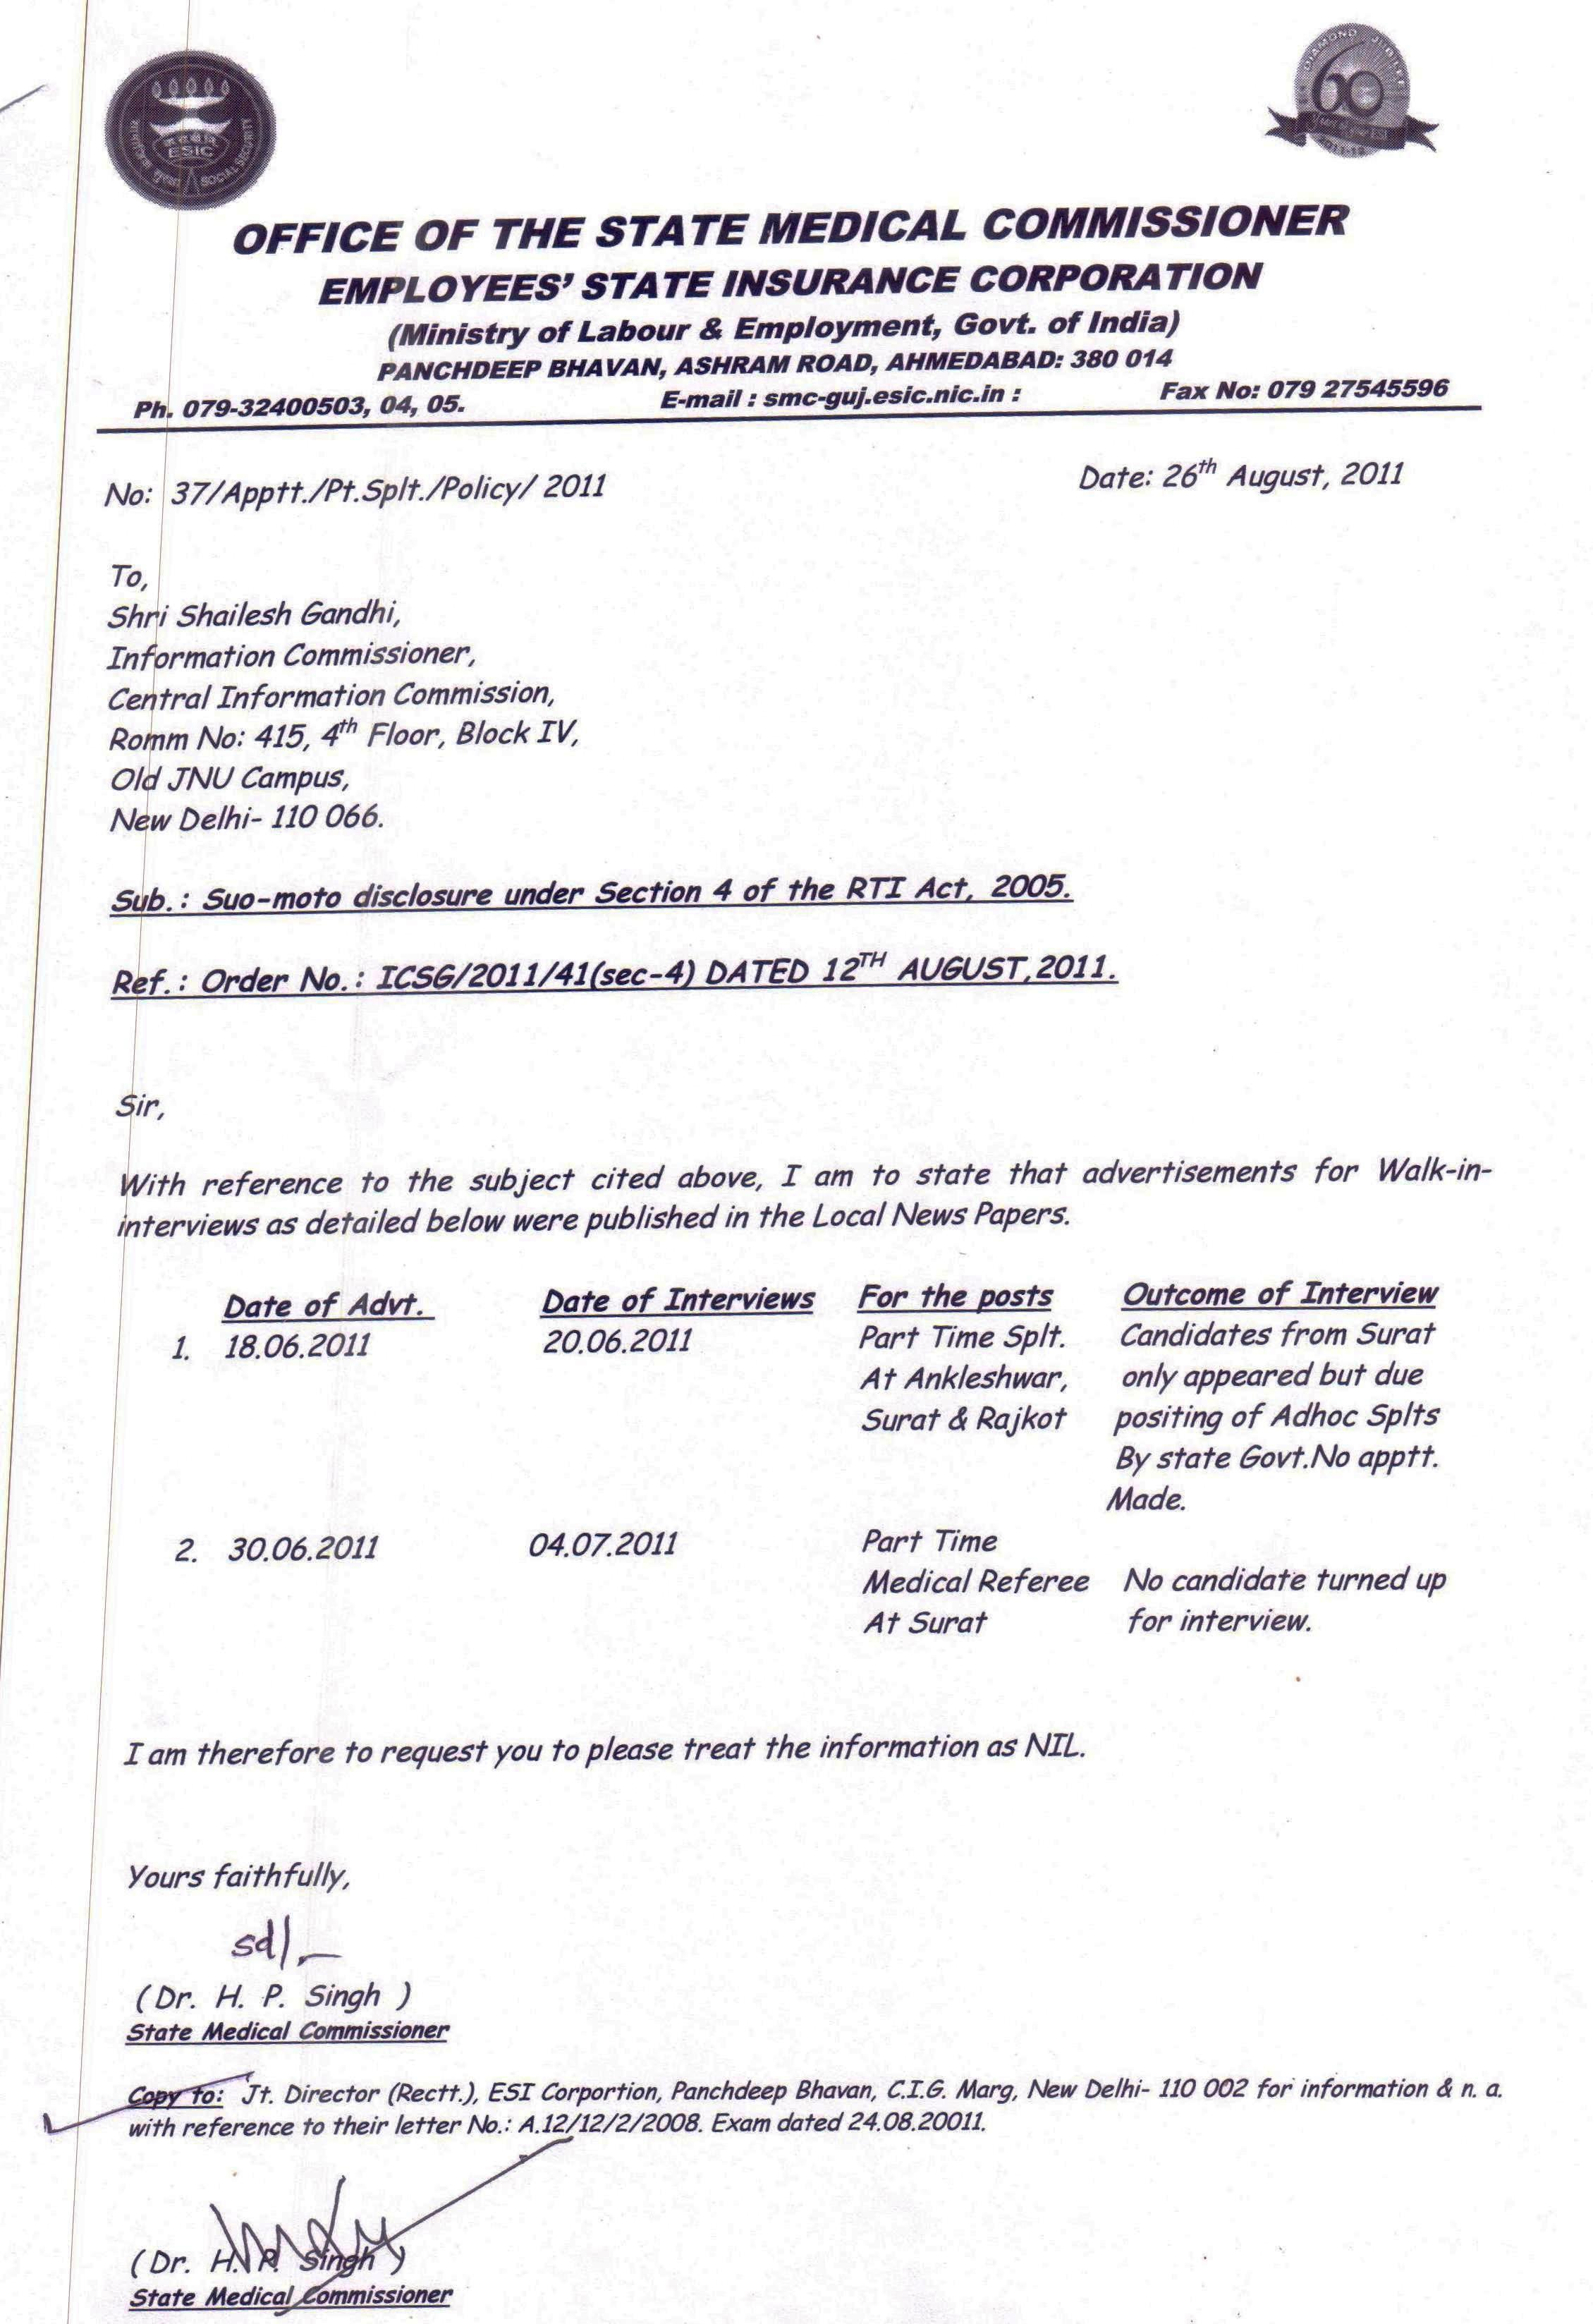 Right to information employees state insurance corporation 19 letter dated 26082011 from smc gujarat on the subject suo moto disclosure us 4 of the rti act2005 mitanshu Choice Image